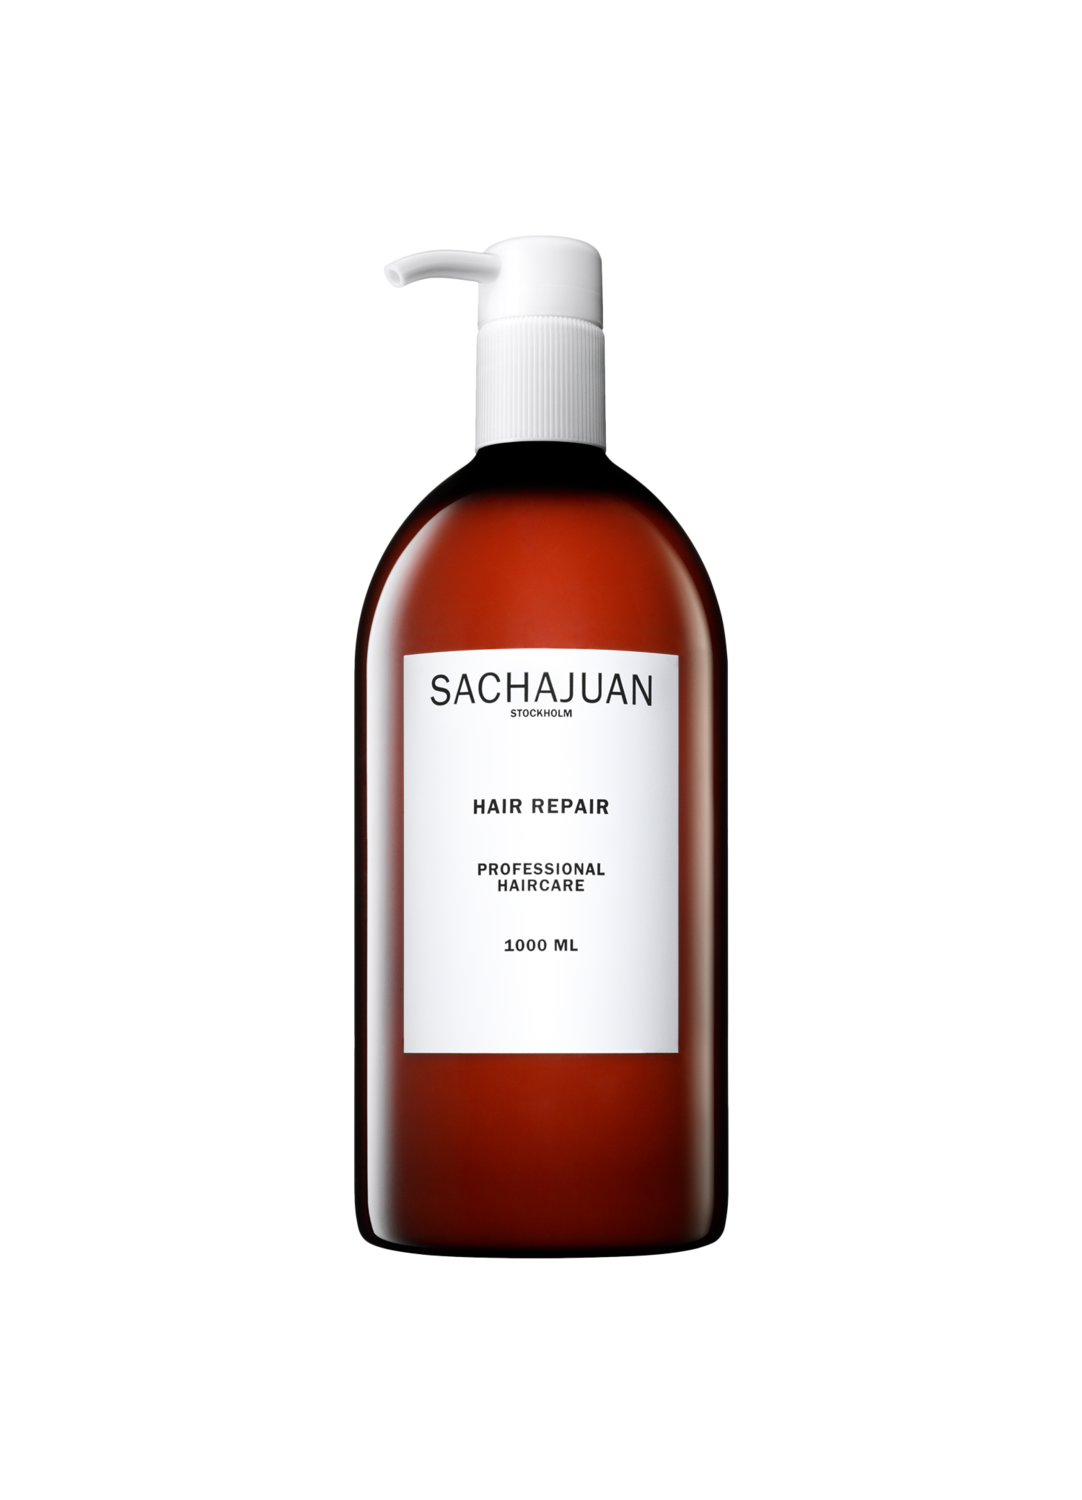 sachajuan | hair repair[product_type ]sachajuan - Kiss and Makeup